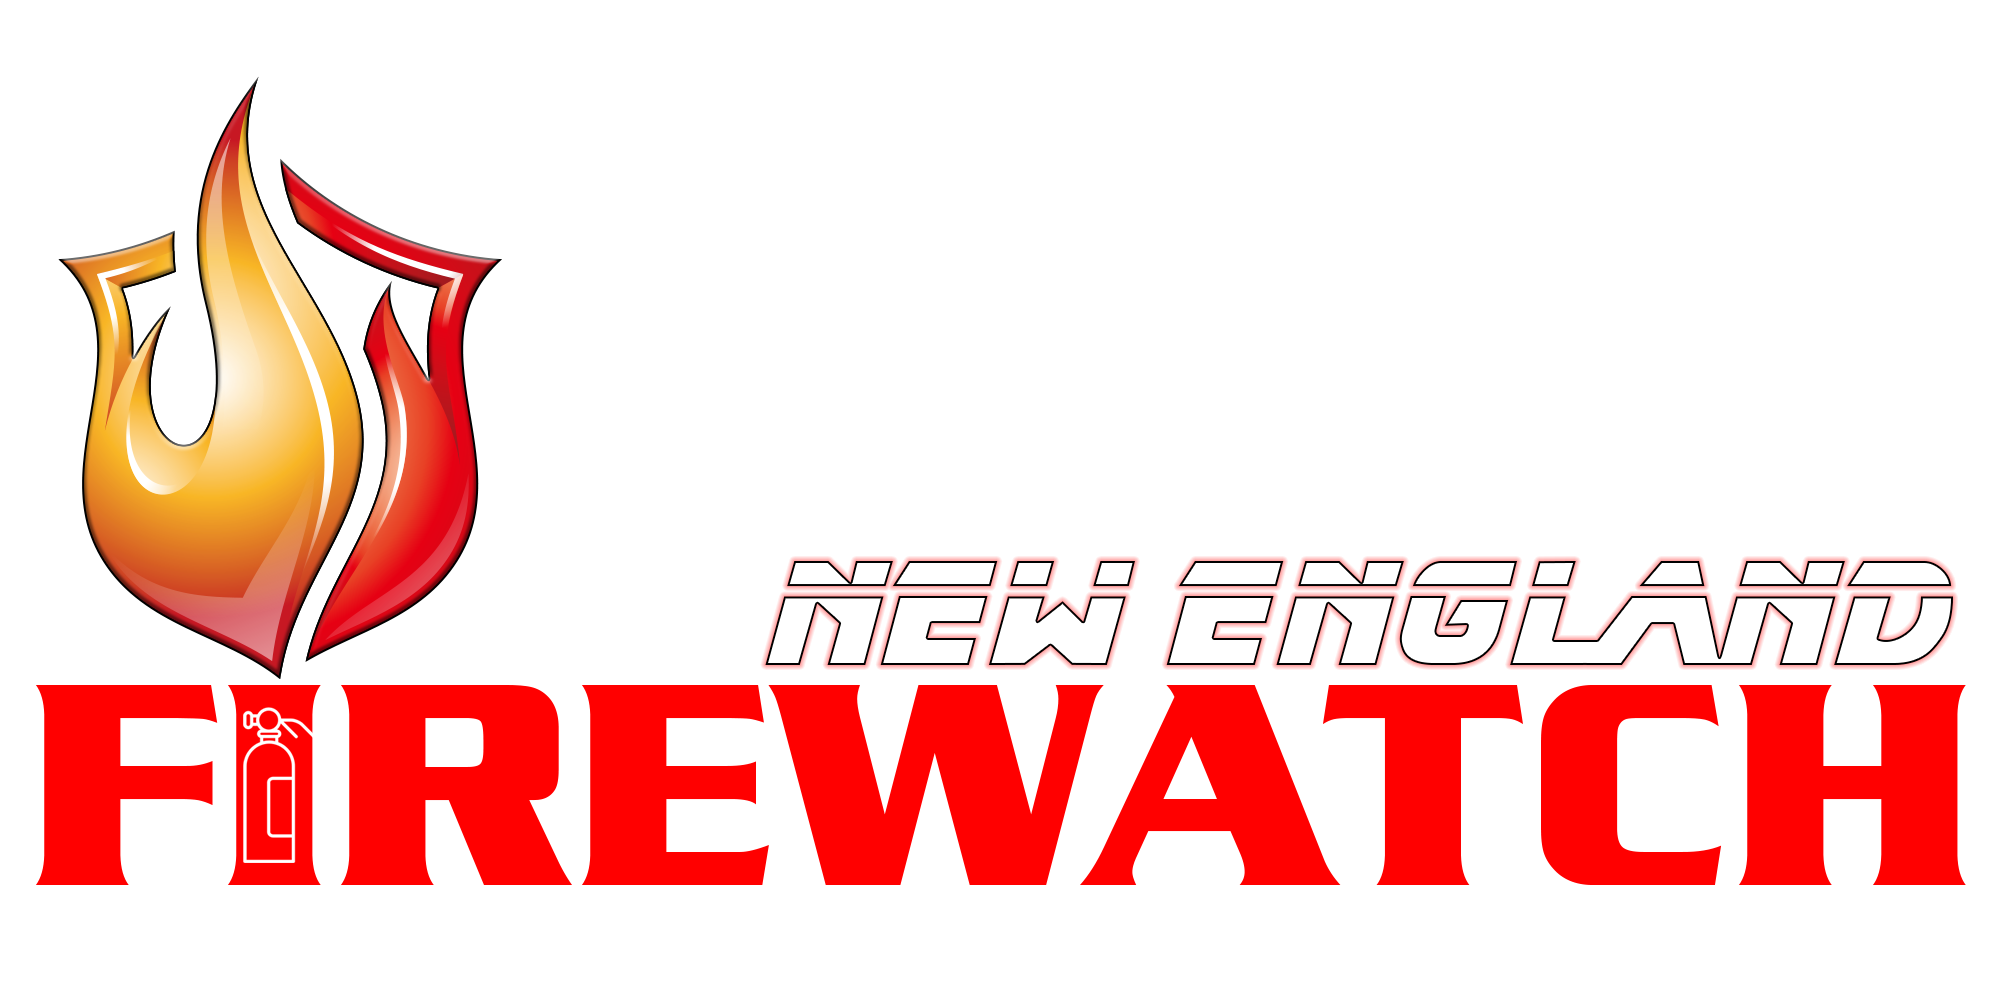 New England Firewatch Logo